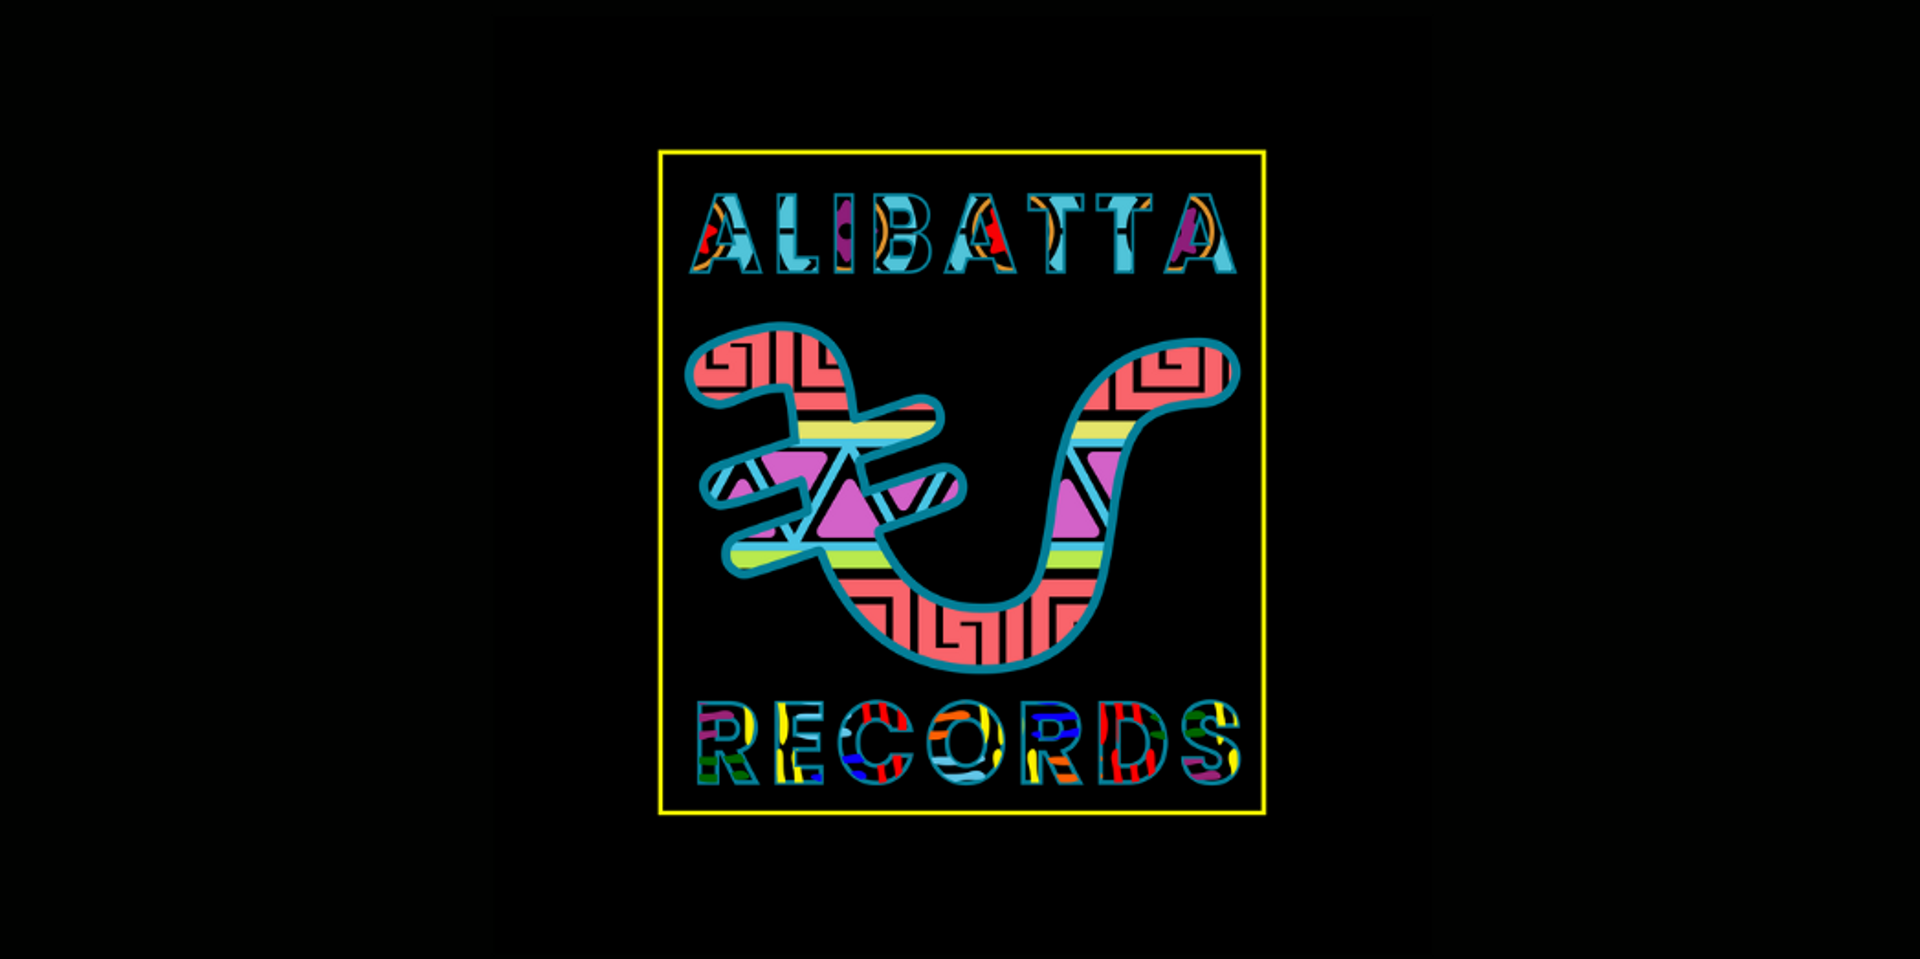 For Alibatta Records, revolutionising the music industry through NFTs and crypto is just the beginning